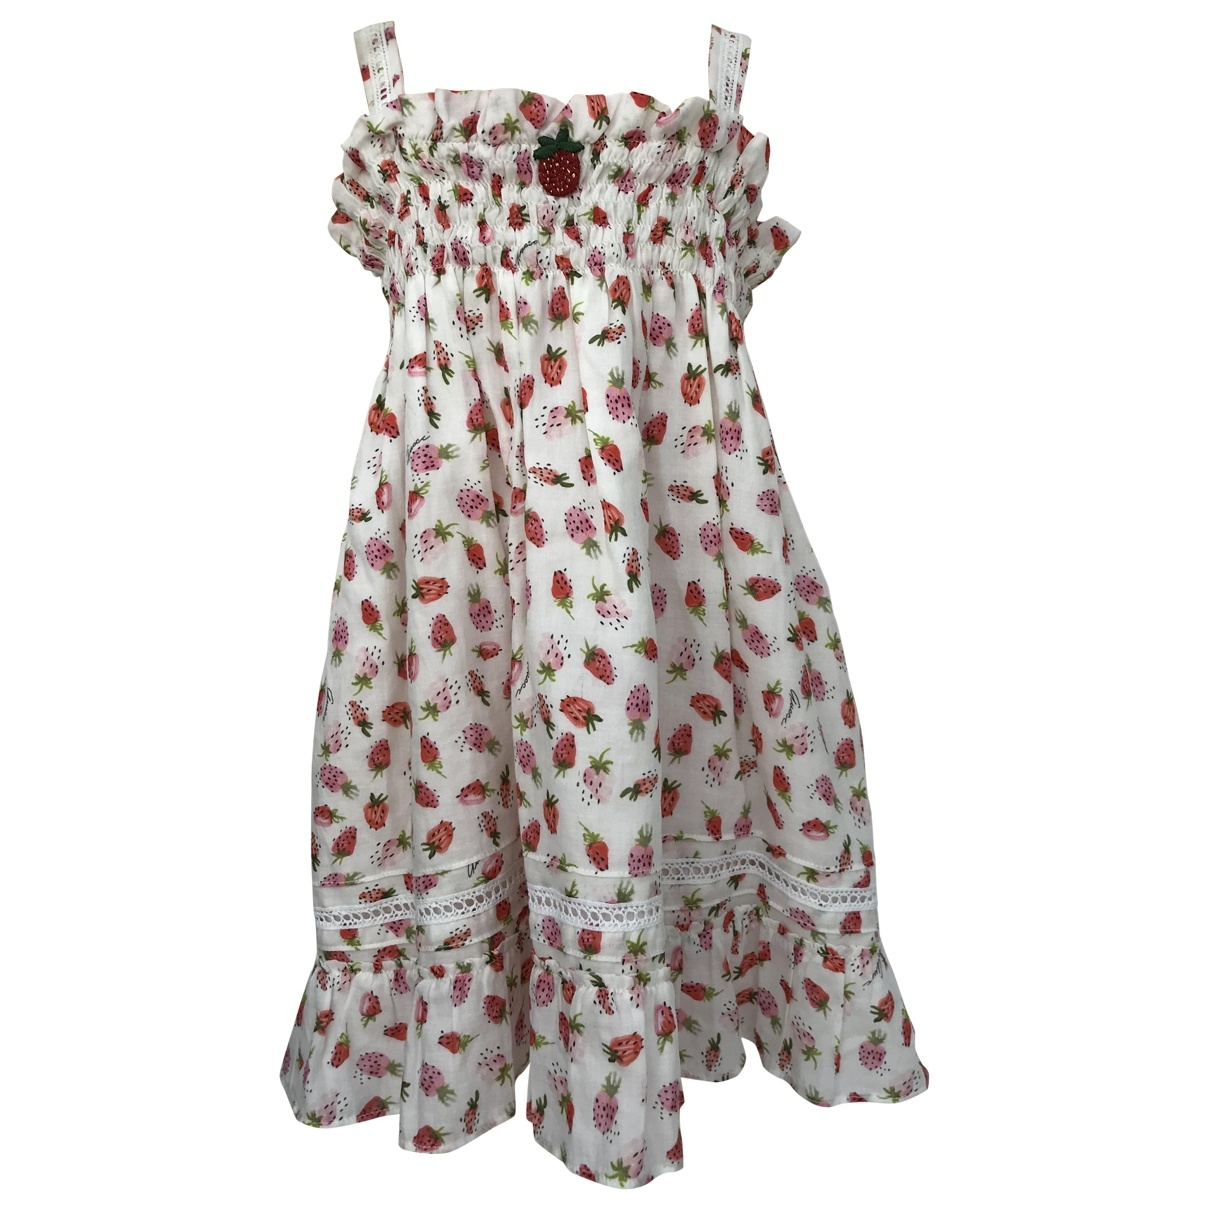 Gucci \N White Cotton dress for Kids 2 years - up to 86cm FR